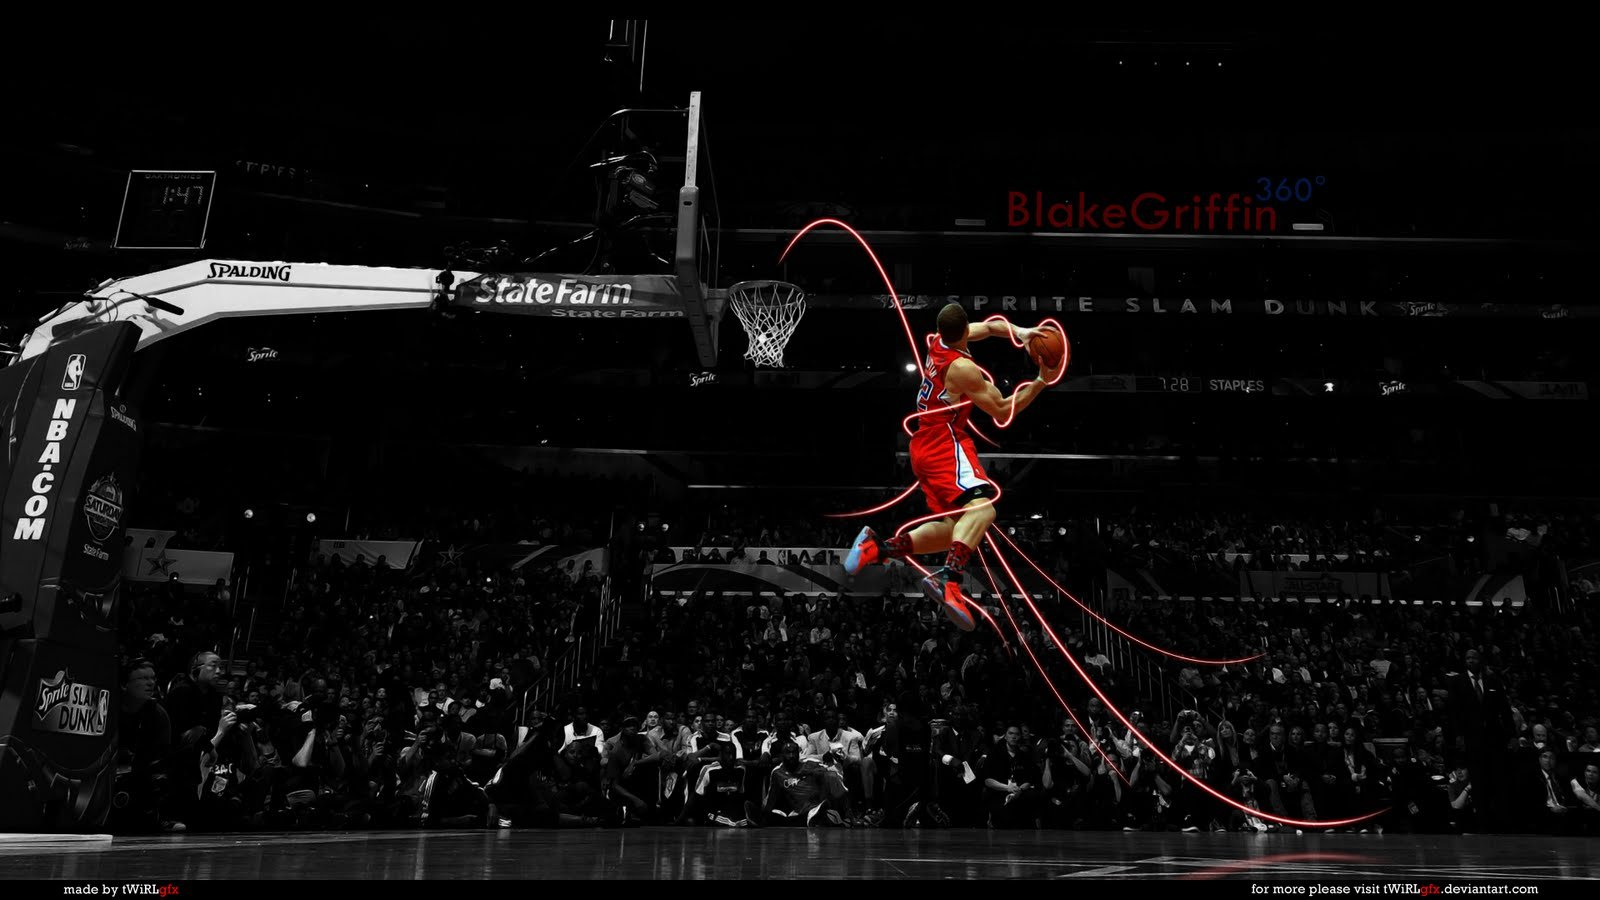 http://4.bp.blogspot.com/-9DYq4pLZKxo/TzTb9DO5DCI/AAAAAAAAPaY/vov_xhY73Kg/s1600/blake-griffin--slam-dunk-contest-widescreen-wallpaper.jpg